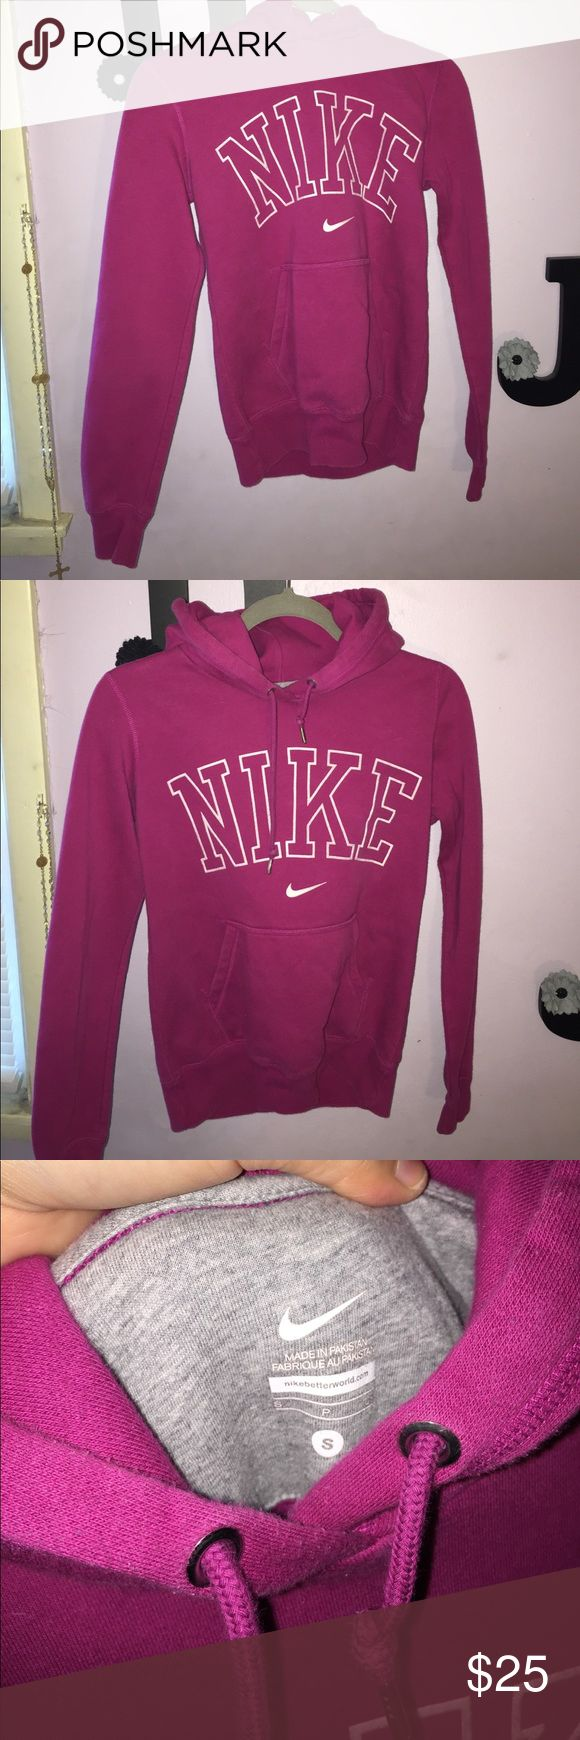 Nike hoodie Size small purple/pinkish hoodie with white nike lettering Nike Tops Sweatshirts & Hoodies